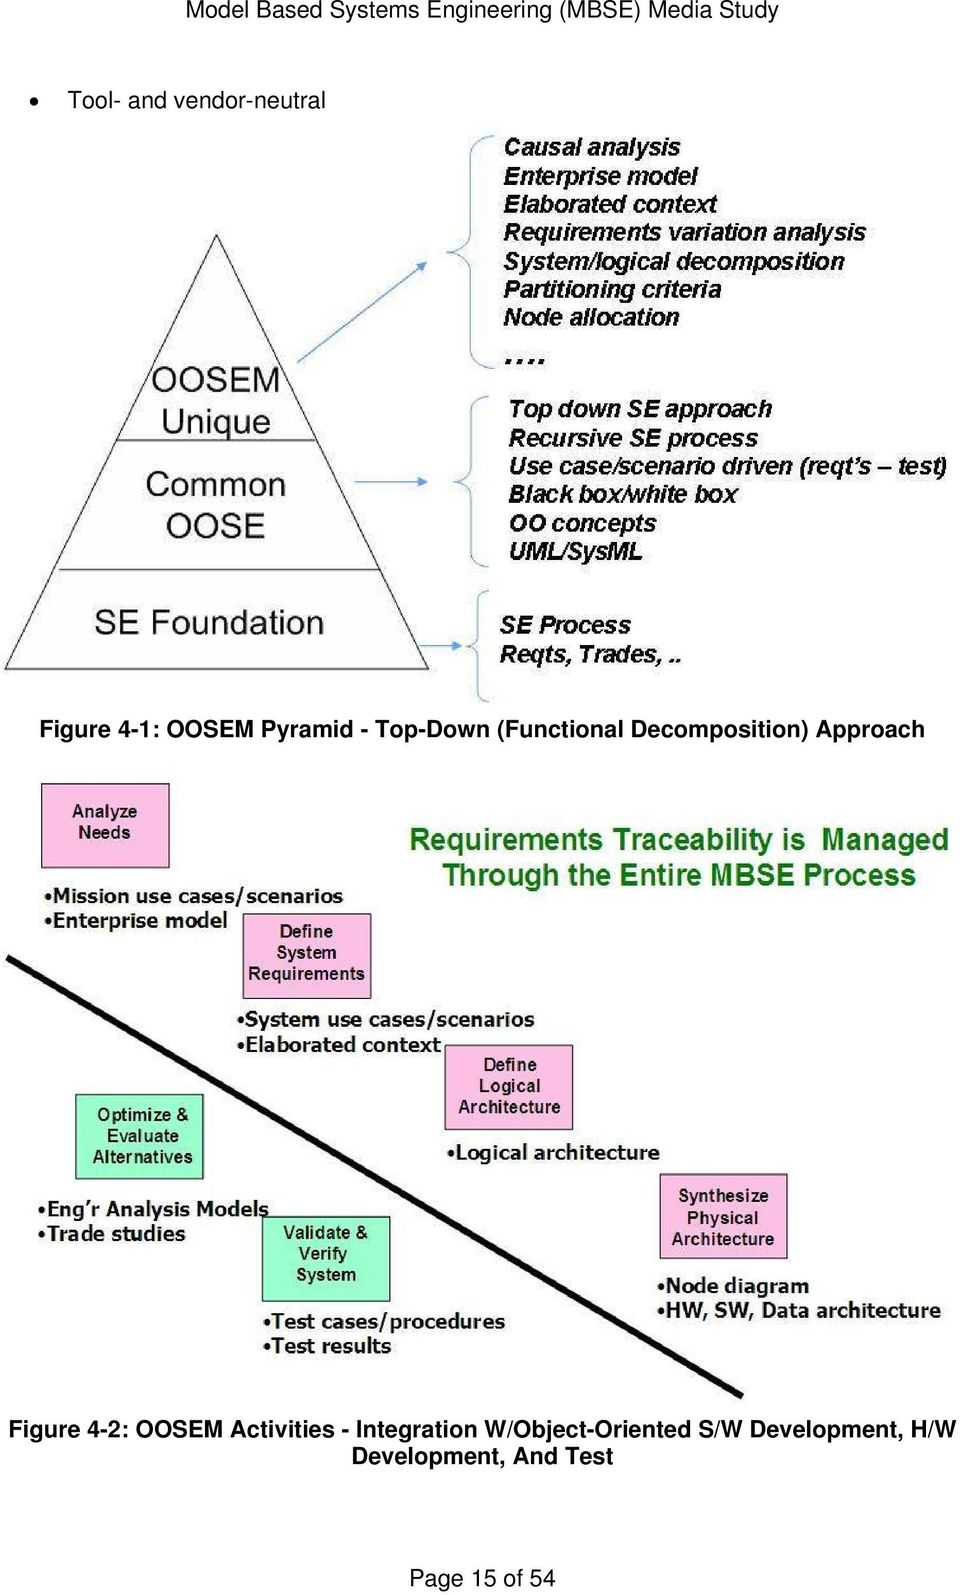 Model Based Systems Engineering Mbse Media Study Prepared By Context Diagram 4 2 Oosem Activities Integration W Object Oriented